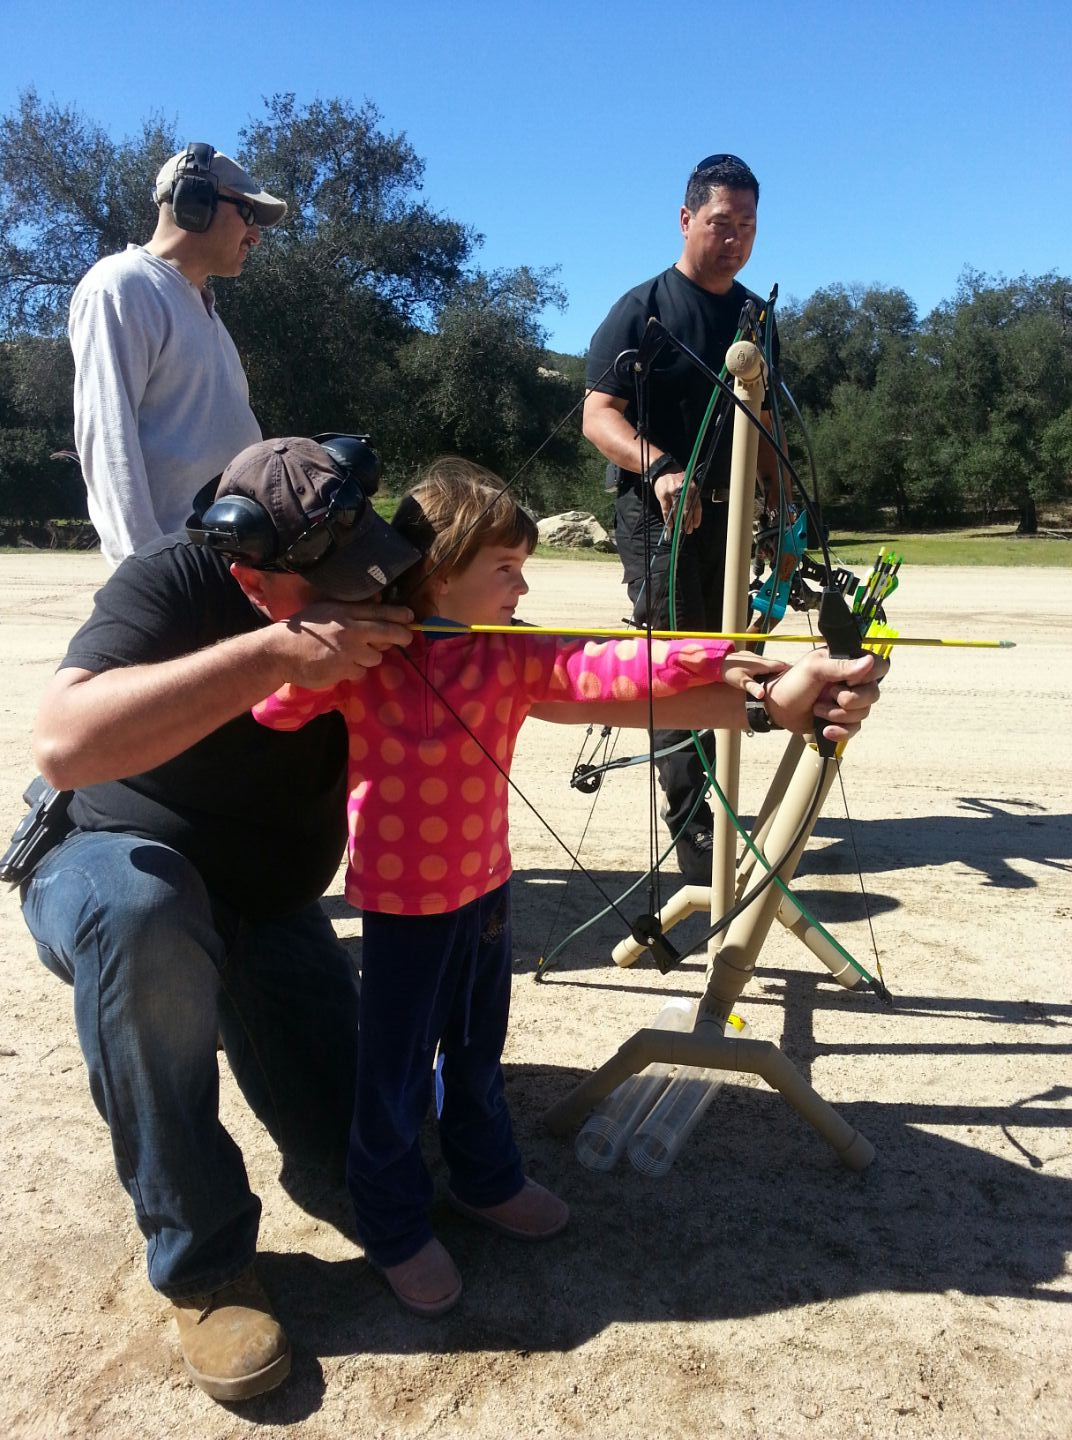 Selfie Sticks vs. Outdoors....a Mother's reflection on her daughters upbringing. Daddy teaching archery. https://reelcamogirl.wordpress.com/2015/01/29/selfie-sticks-vs-outdoors-a-mothers-reflection-on-her-daughters-upbringing/